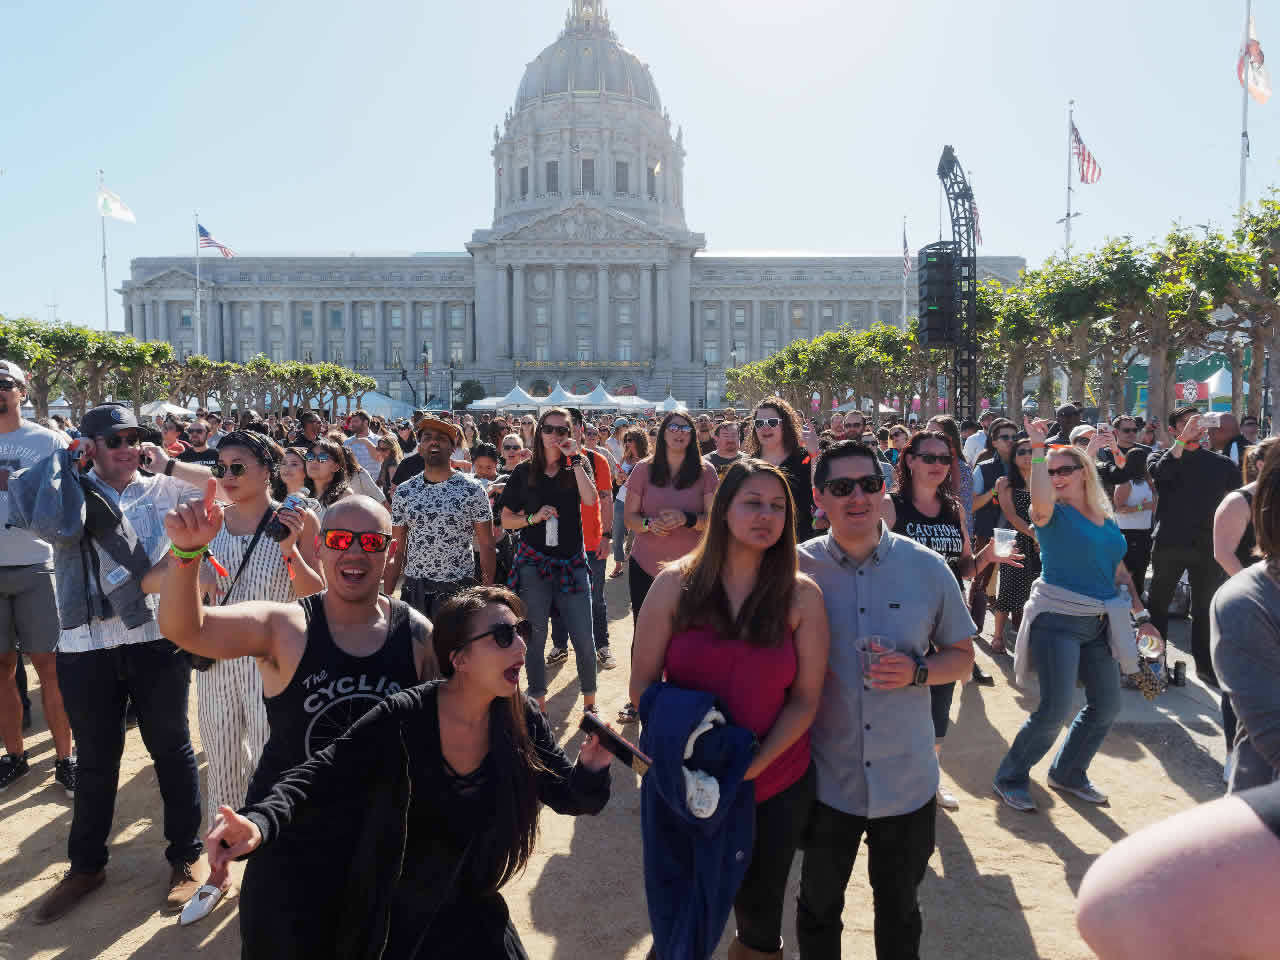 <div class='meta'><div class='origin-logo' data-origin='none'></div><span class='caption-text' data-credit='KGO-TV'>A crowd of people smile as they watch music performances at Clusterfest in San Francisco, Calif. on June 2, 2018.</span></div>